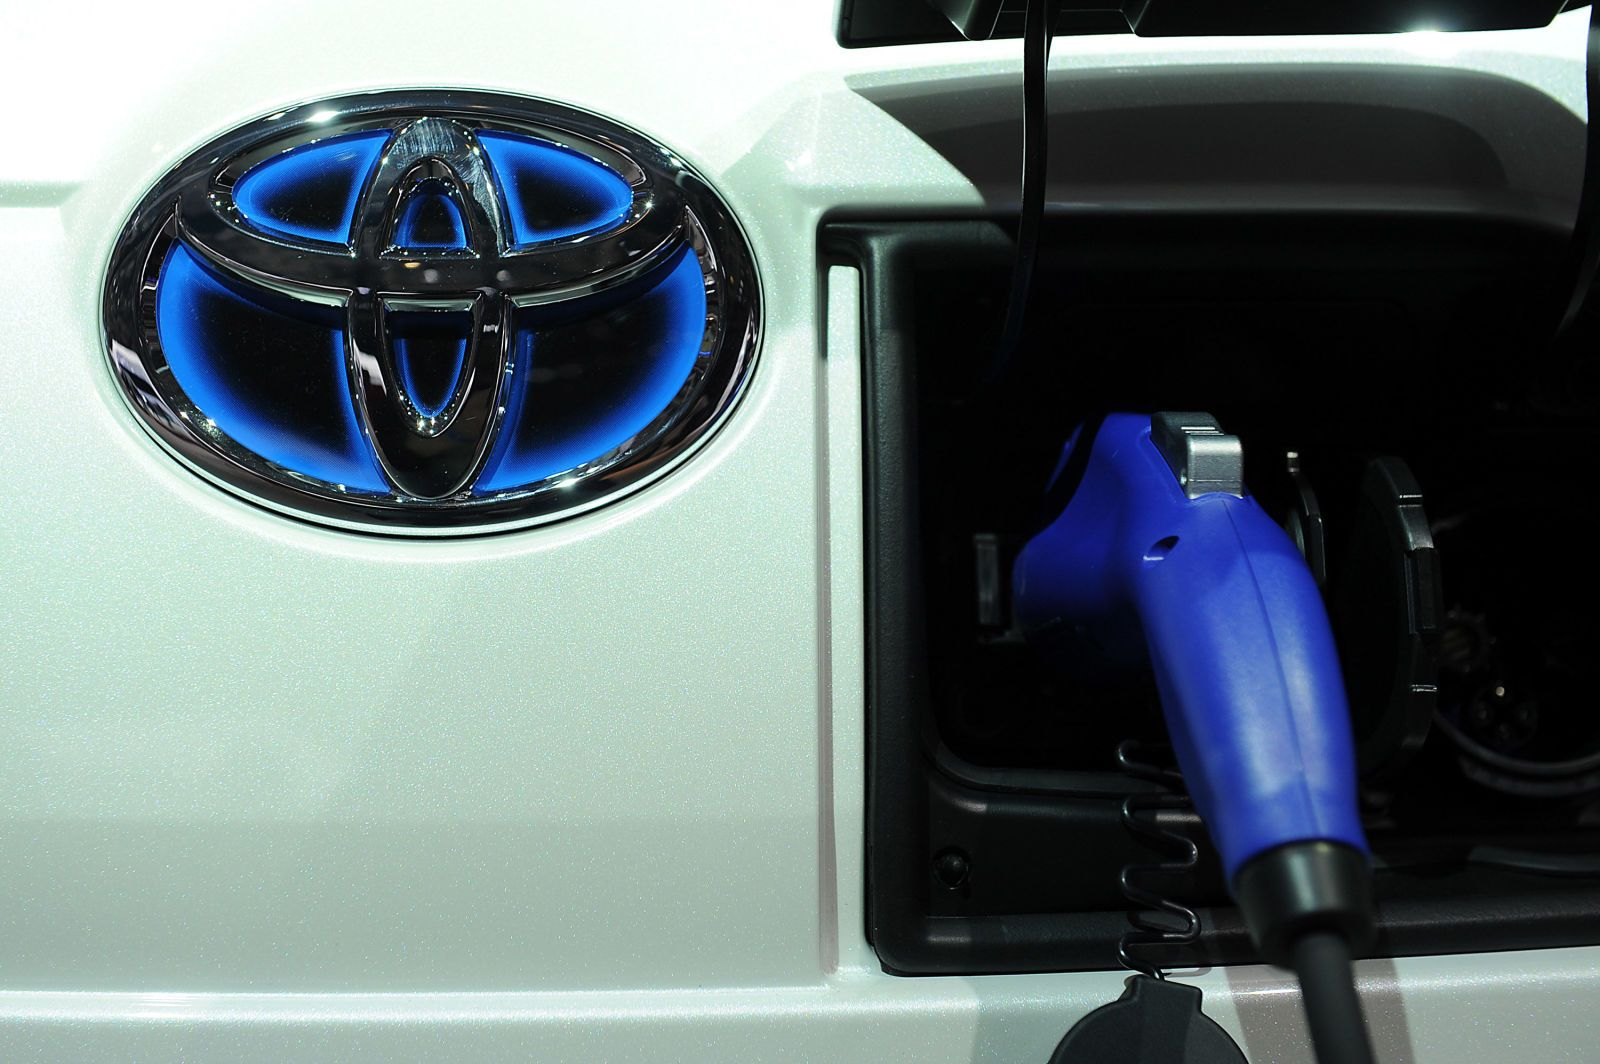 Toyota Working on Electric Cars That Charge in Minutes for